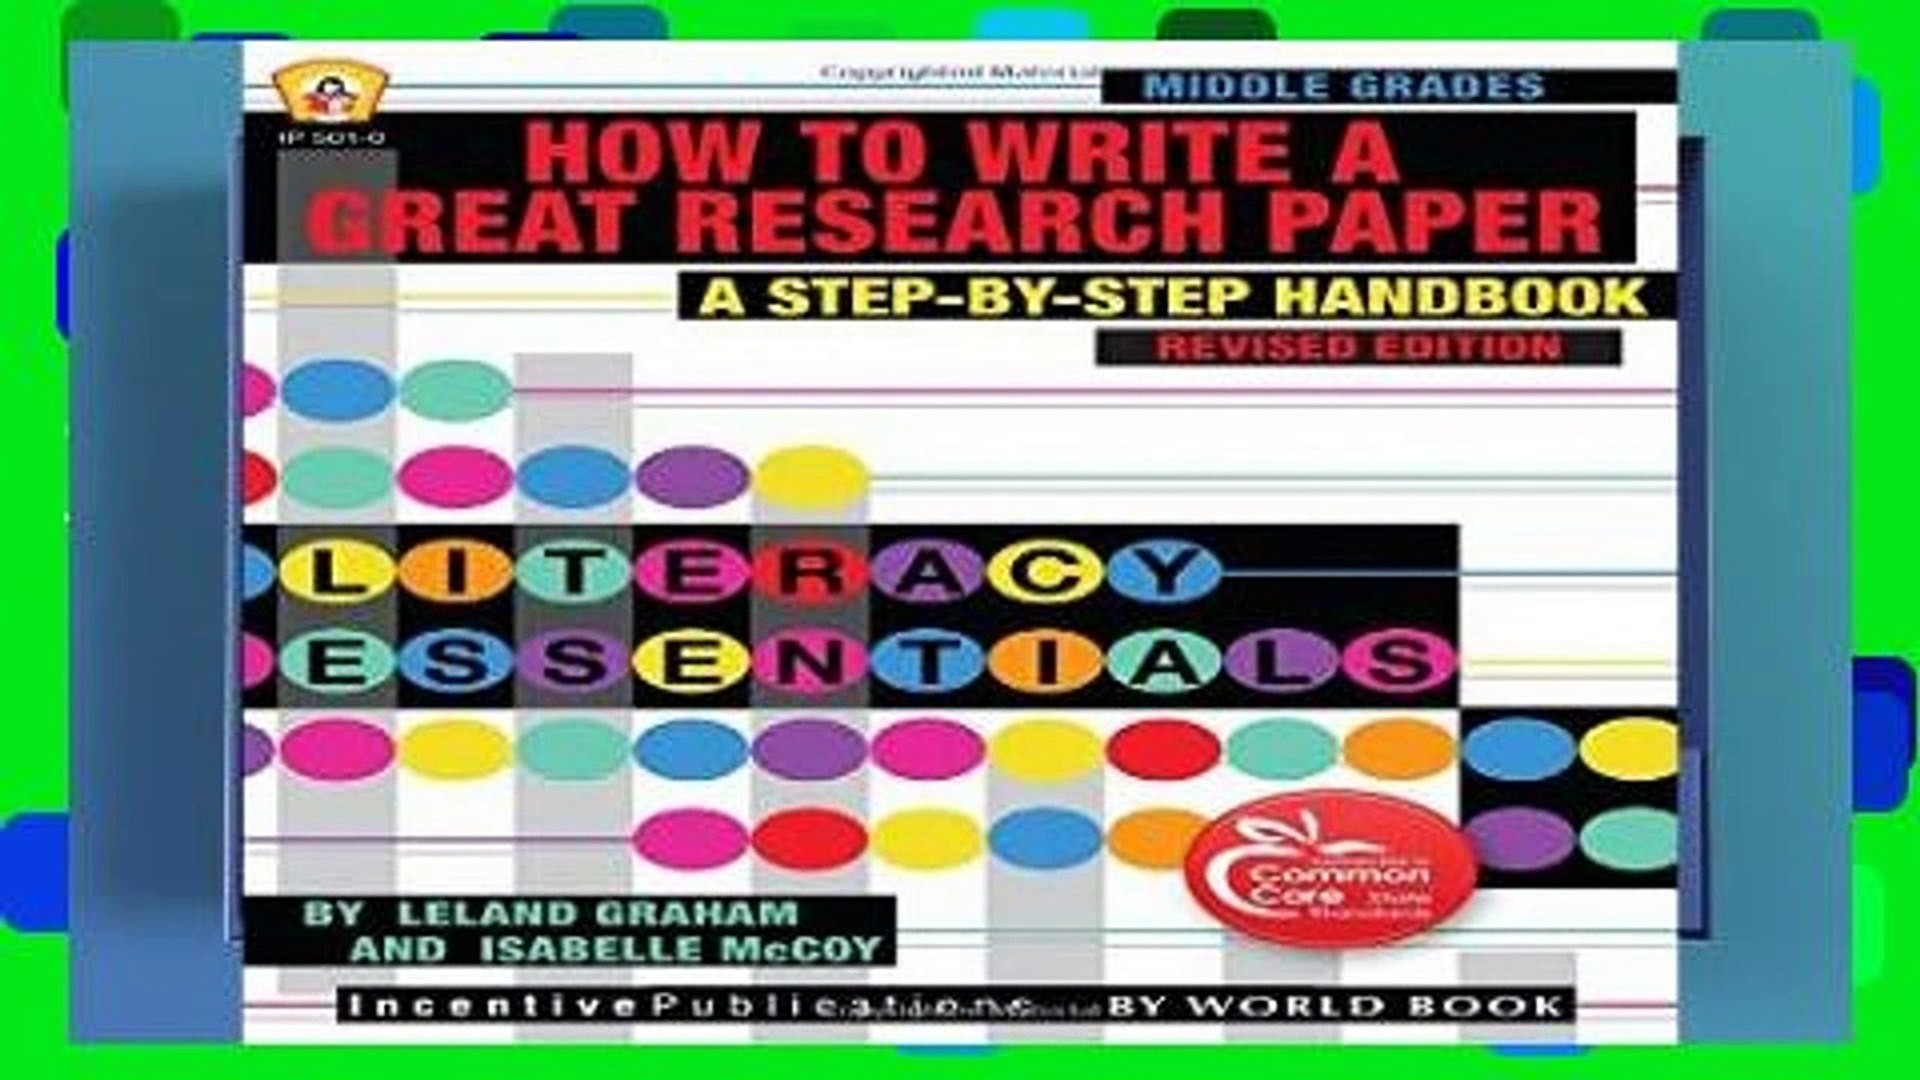 011 Research Paper How To Write Great Book X1080 Best A Good On 1920